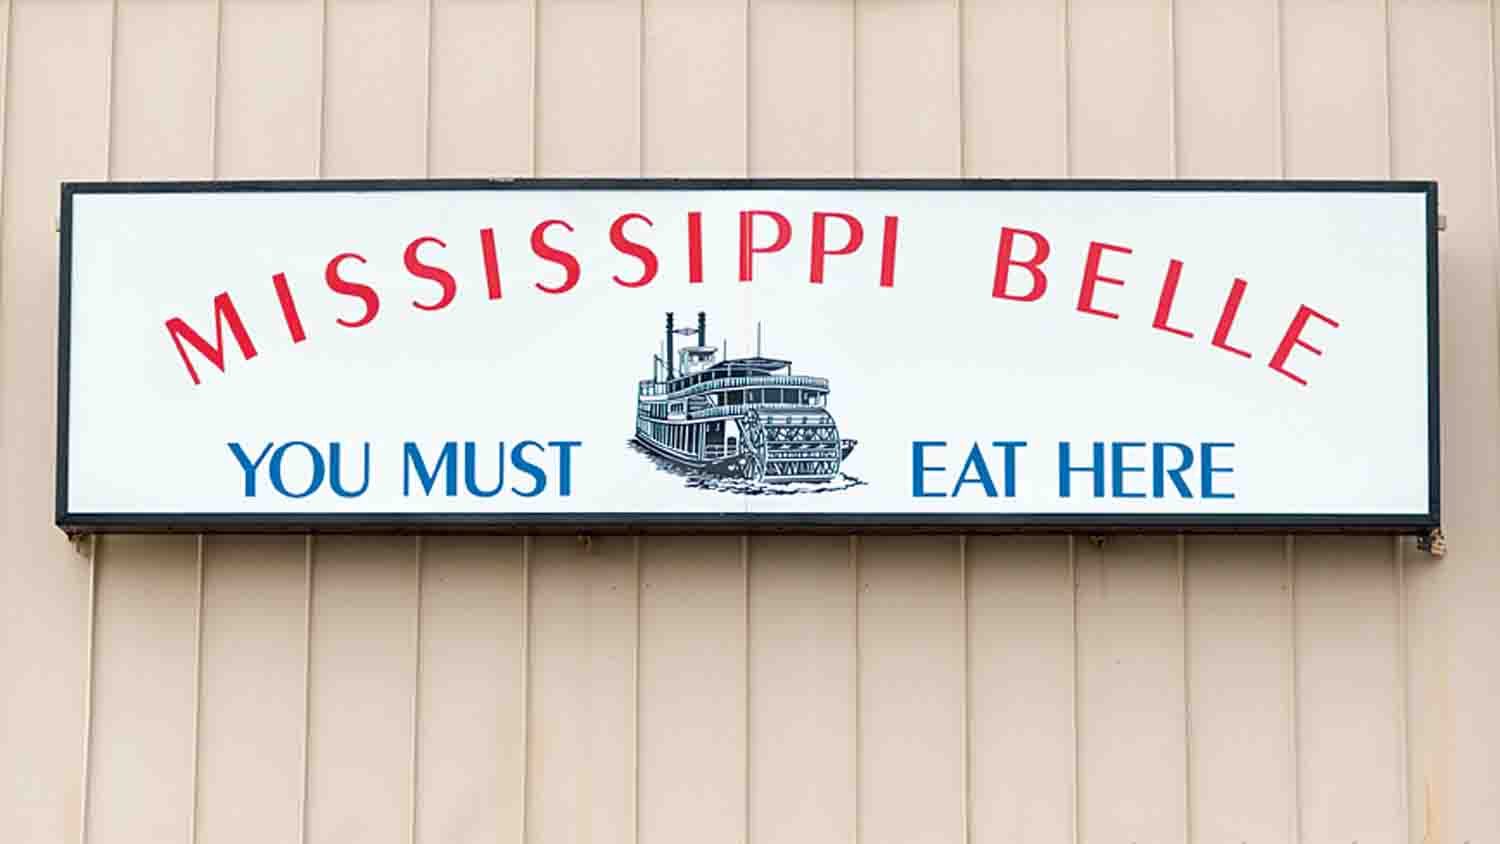 Mississippi belle 1